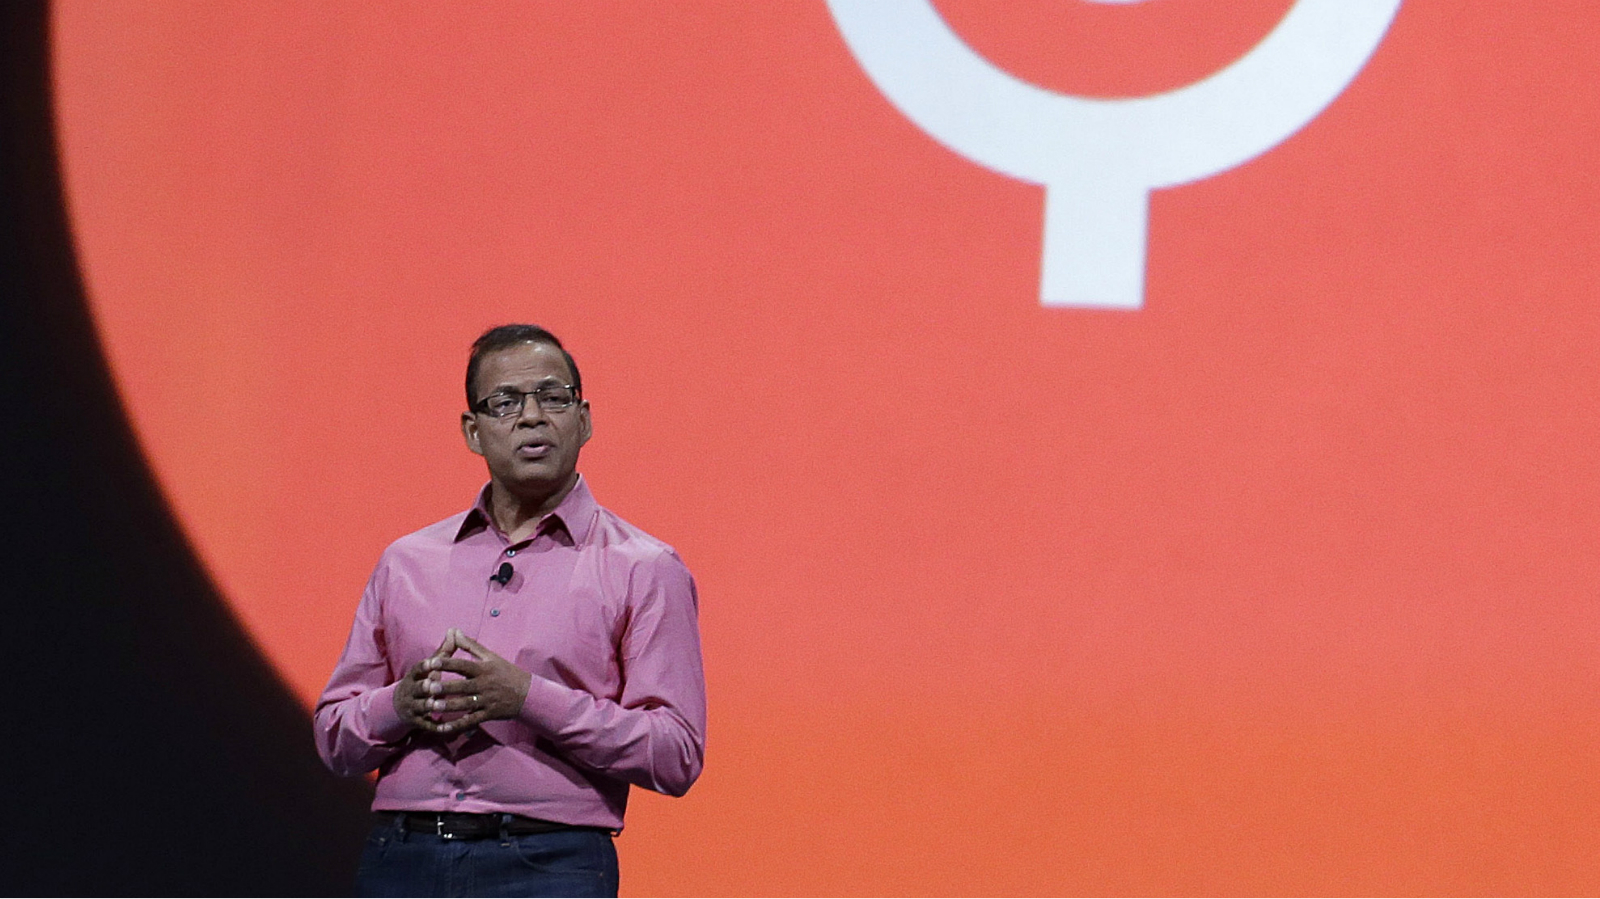 The rise and fall of Amit Singhal, the former Google star